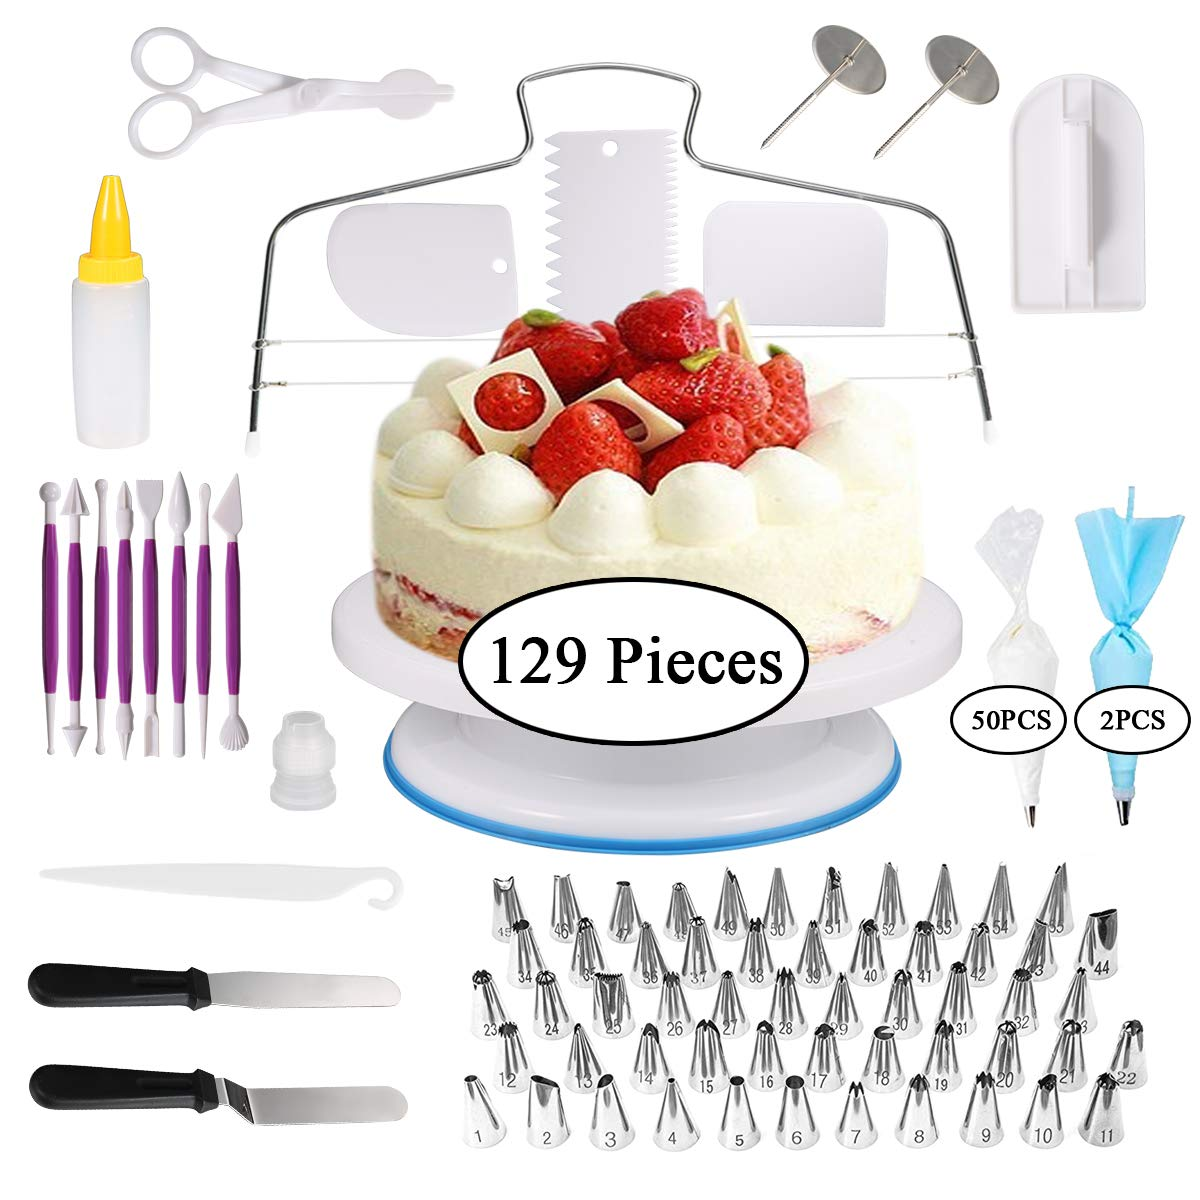 Cake Decorating Supplies,129 PCS Cake Decorating Tips for Beginners,Baking Decorating Supplies Set With Rotating Turntable Stand,Icing Piping Tips & Pastry Bags,Icing Spatula & Smoother by Yehua